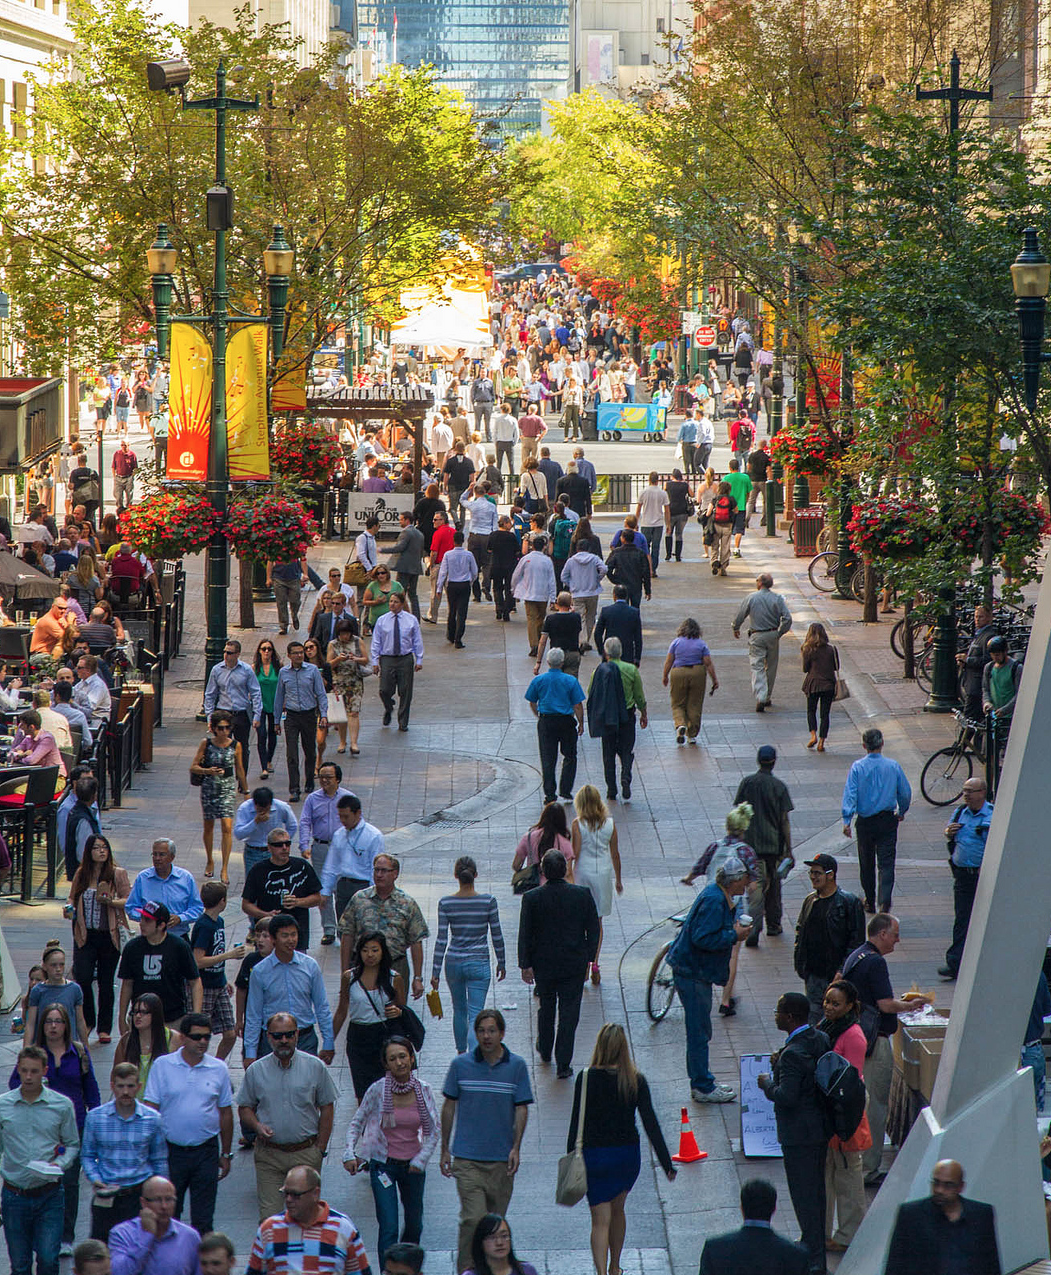 Edmonton has nothing to match Calgary's Stephen Avenue Walk at lunch hour. (photo credit: Jeff Trost)